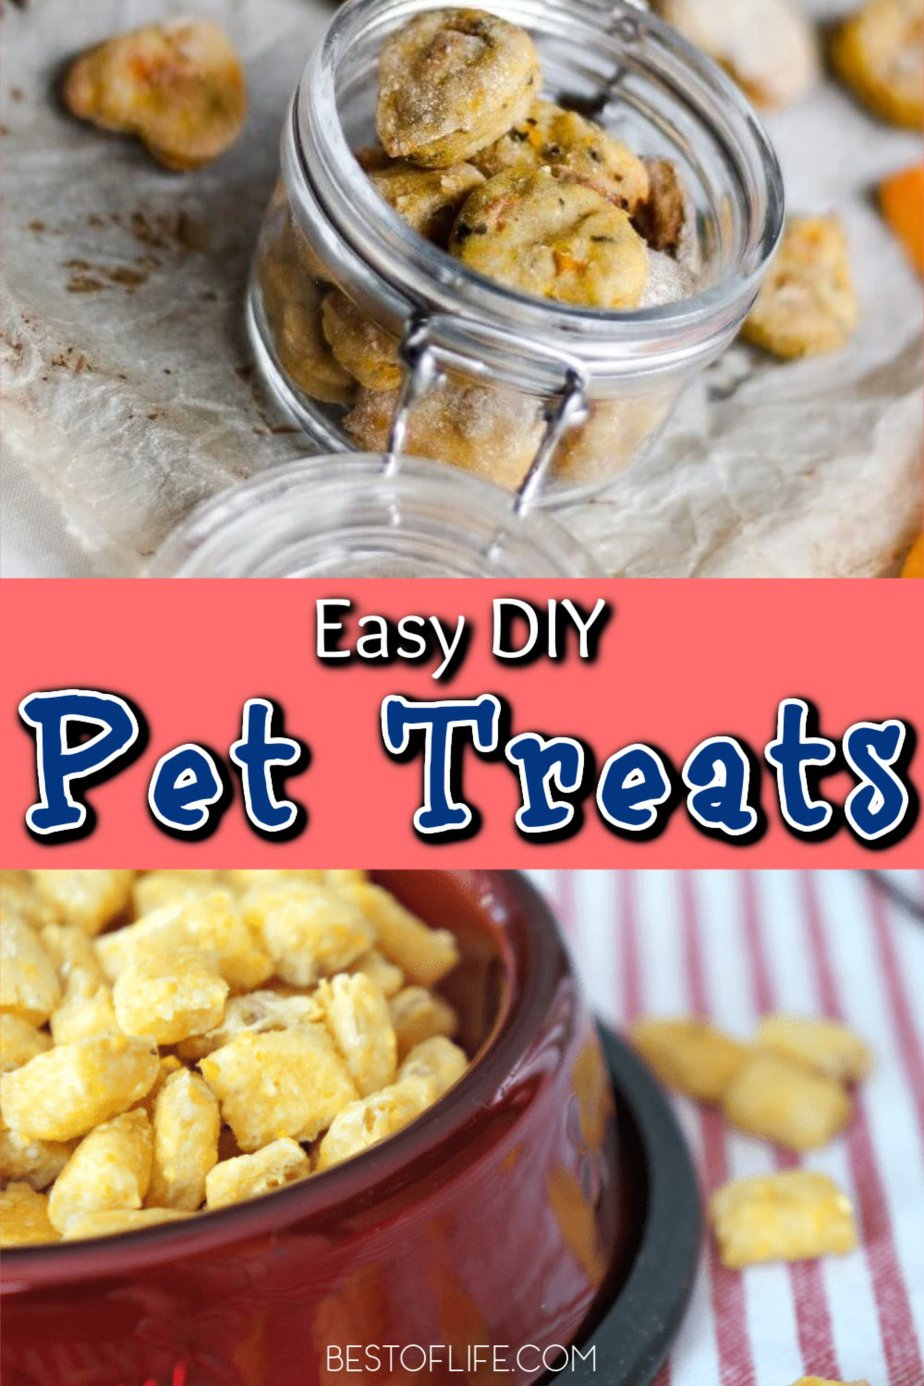 DIY pet treats are a great way to keep track of what you are feeding your pet, while also saving money as a pet owner. Pet Treats Recipes | Homemade Pet Treat Ideas | Tips for Packaging Pet Treats | Pet Treat Storage Ideas | DIY Pet Treat Jars | DIY Pet Food | Tips for Pet Owners | Ideas for Owning Pets #pets #DIY via @thebestoflife